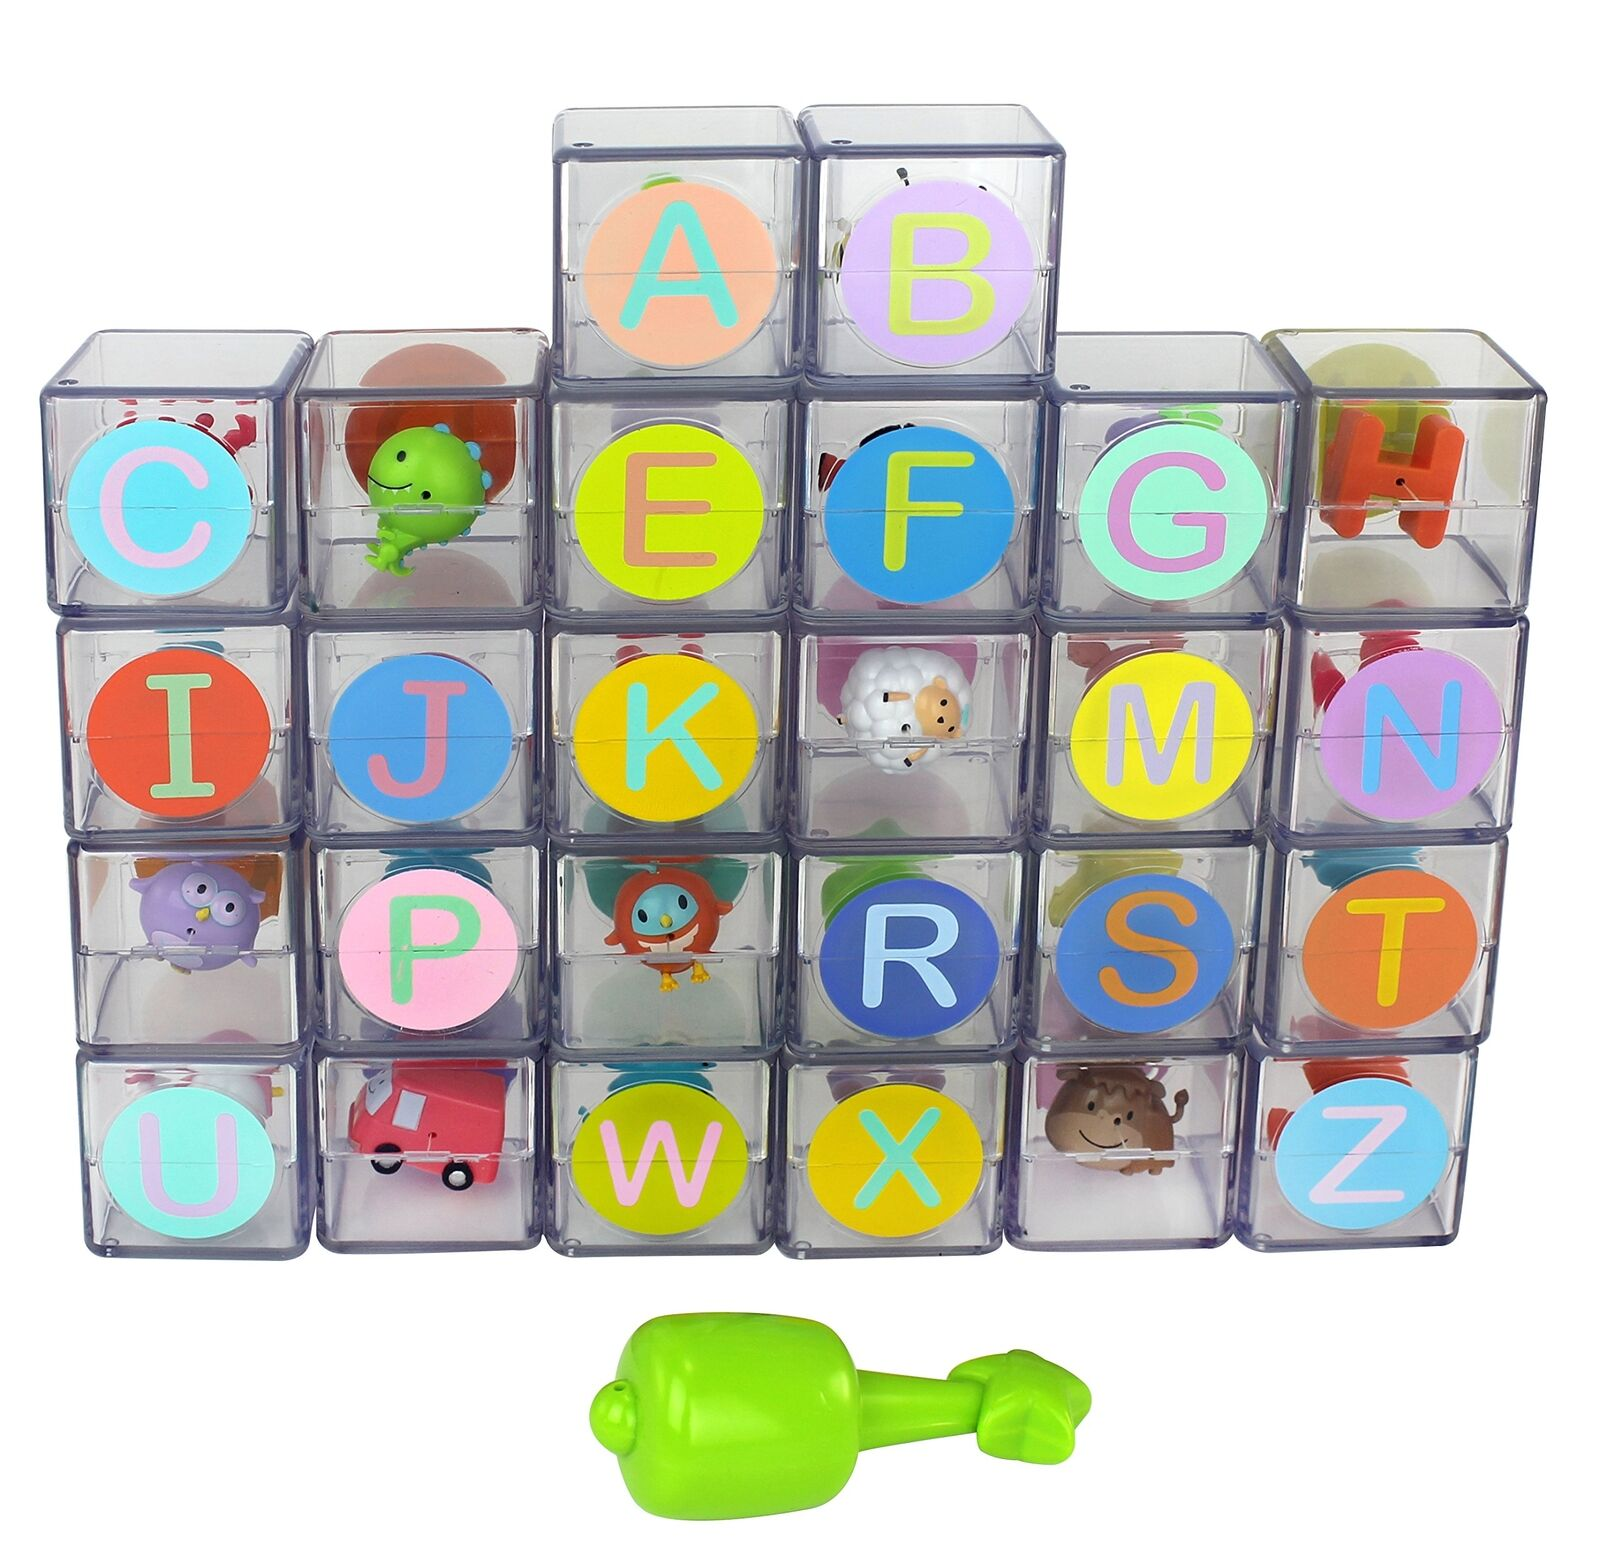 Mirari ABC Flip Flop Blocks Alphabet Interactive Learning